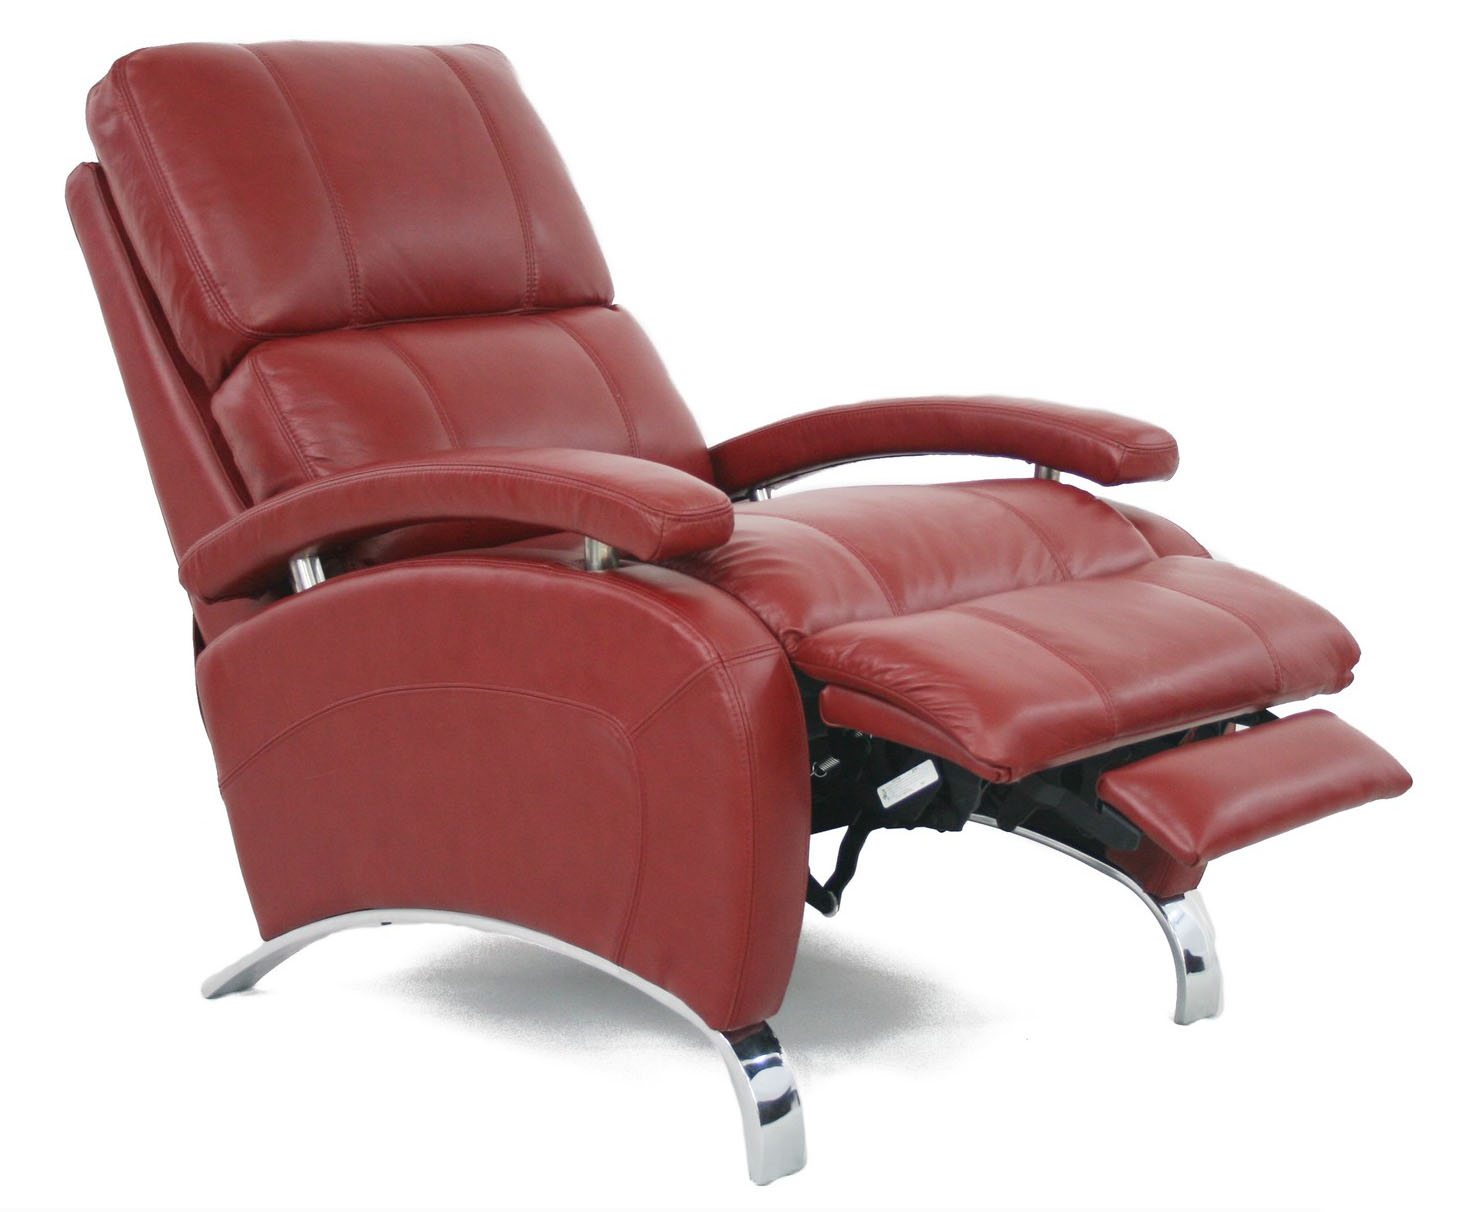 swivel creek reclining theo way chair chairs stoney rocking recliner three recliners item palliser b furniture products